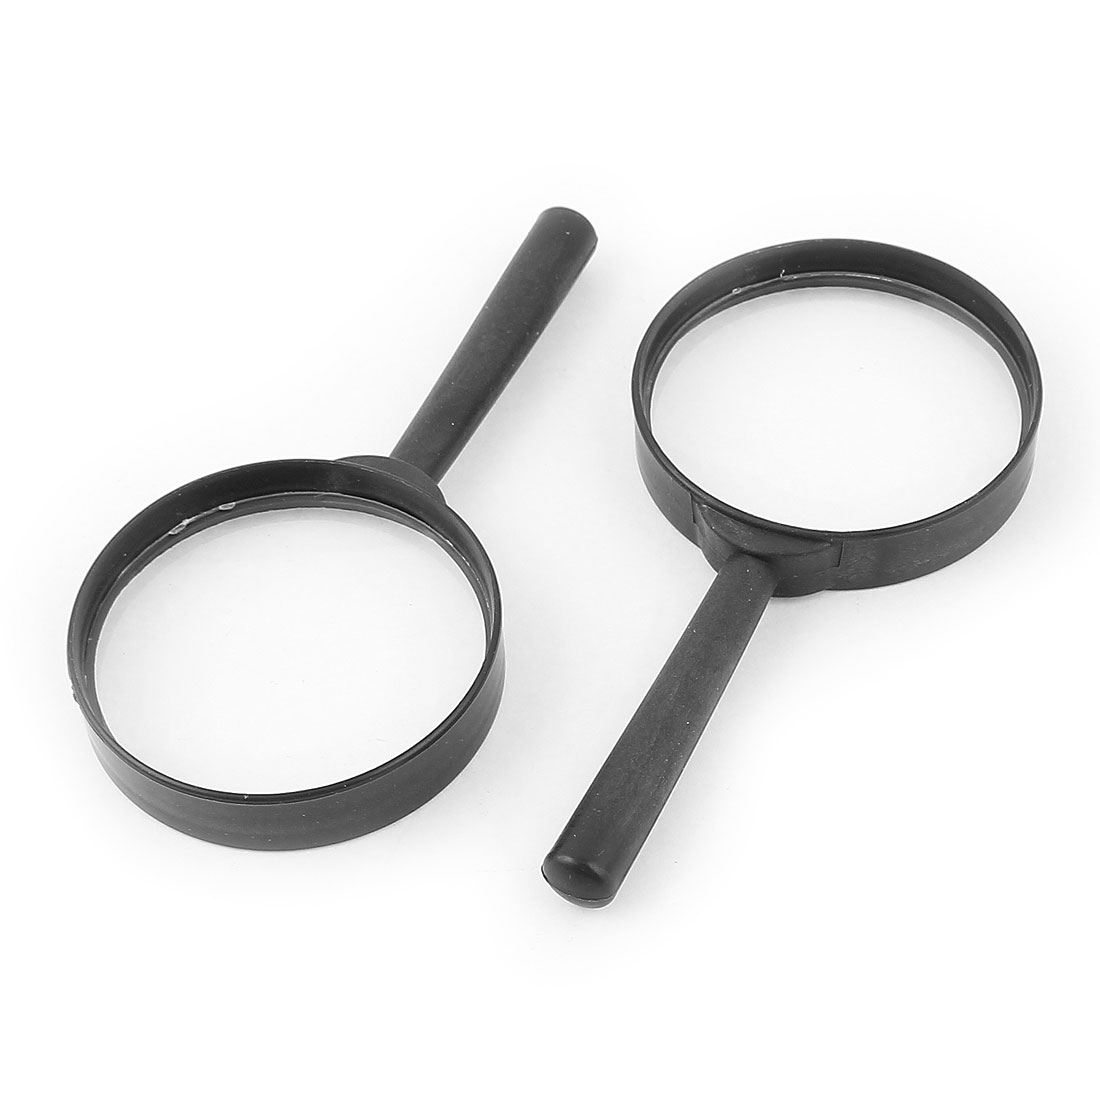 Handheld 60mm Dia Lens 5X Magnifying Glasses Magnifier Jewelry Loupe 5pcs